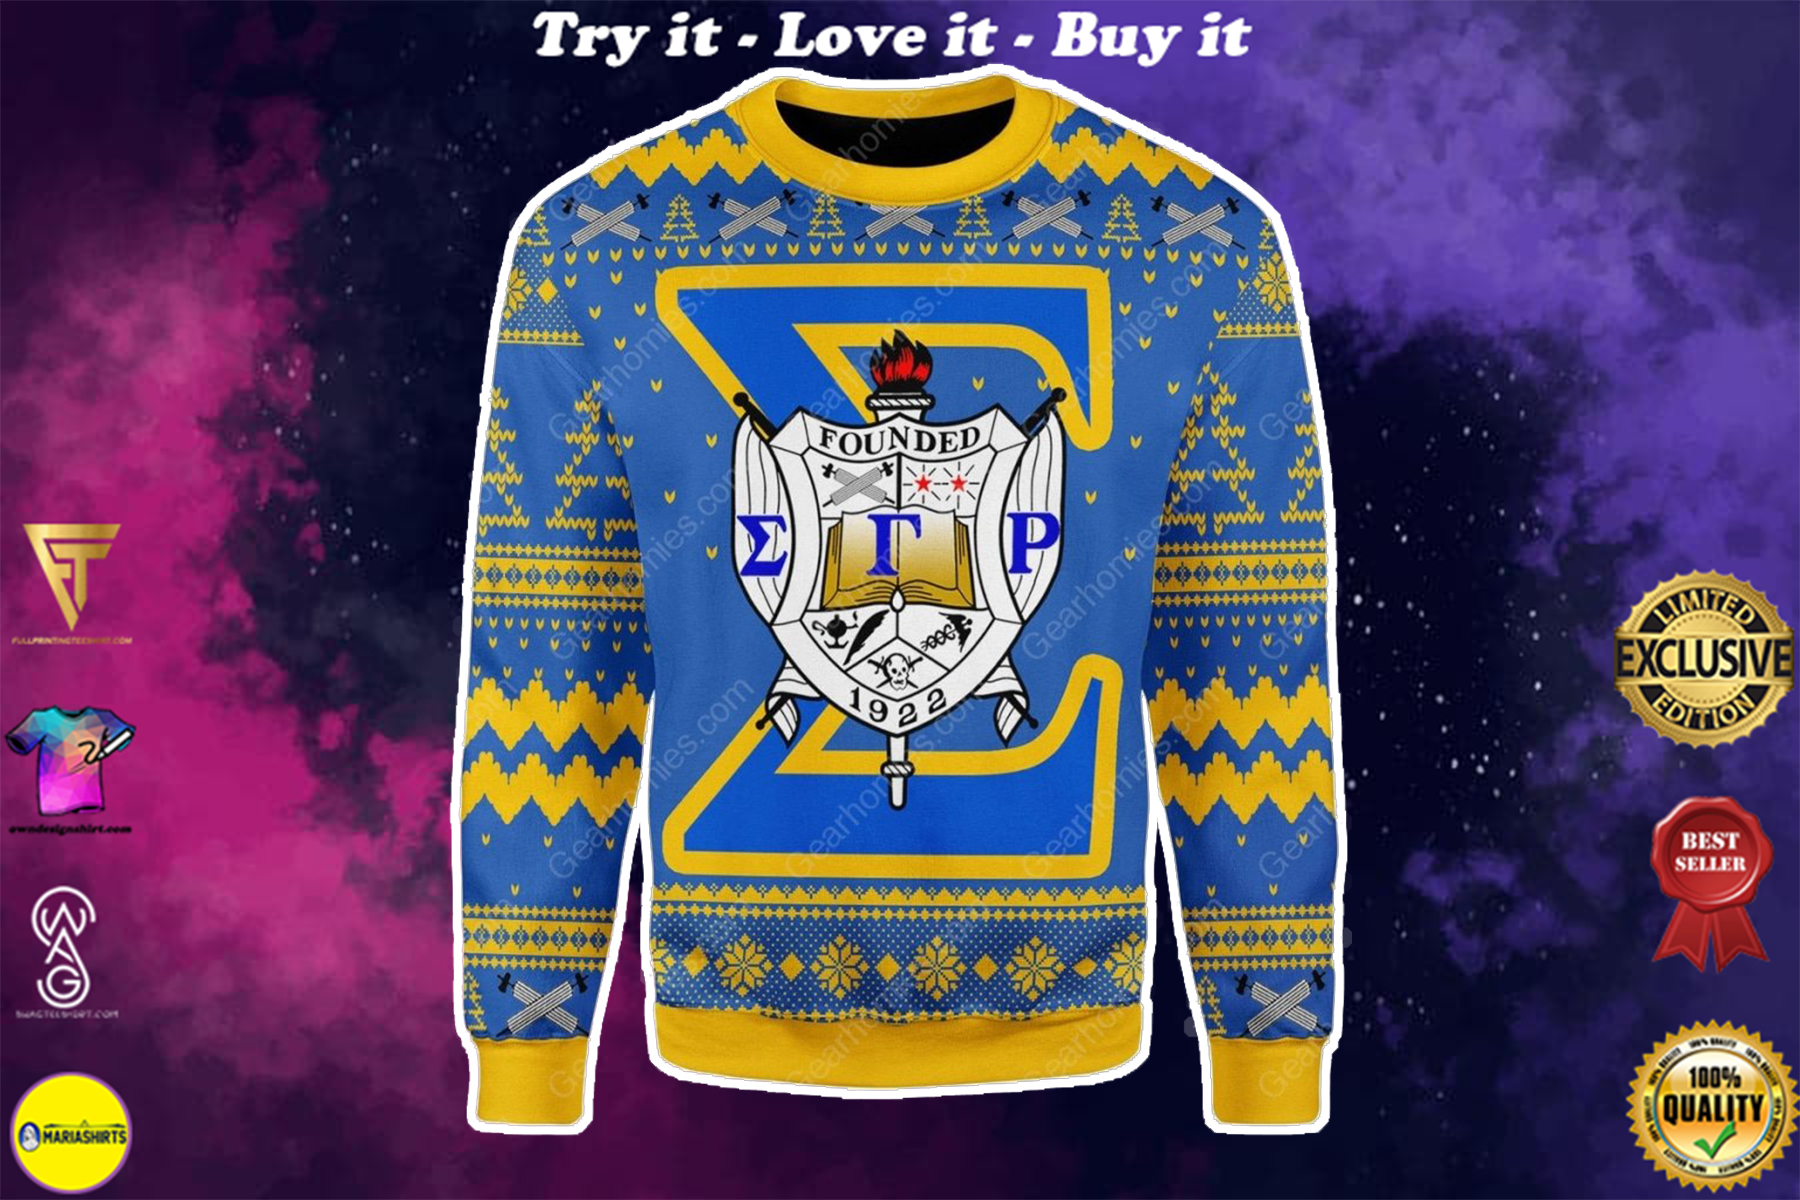 sigma gamma rho 1922 all over printed ugly christmas sweater